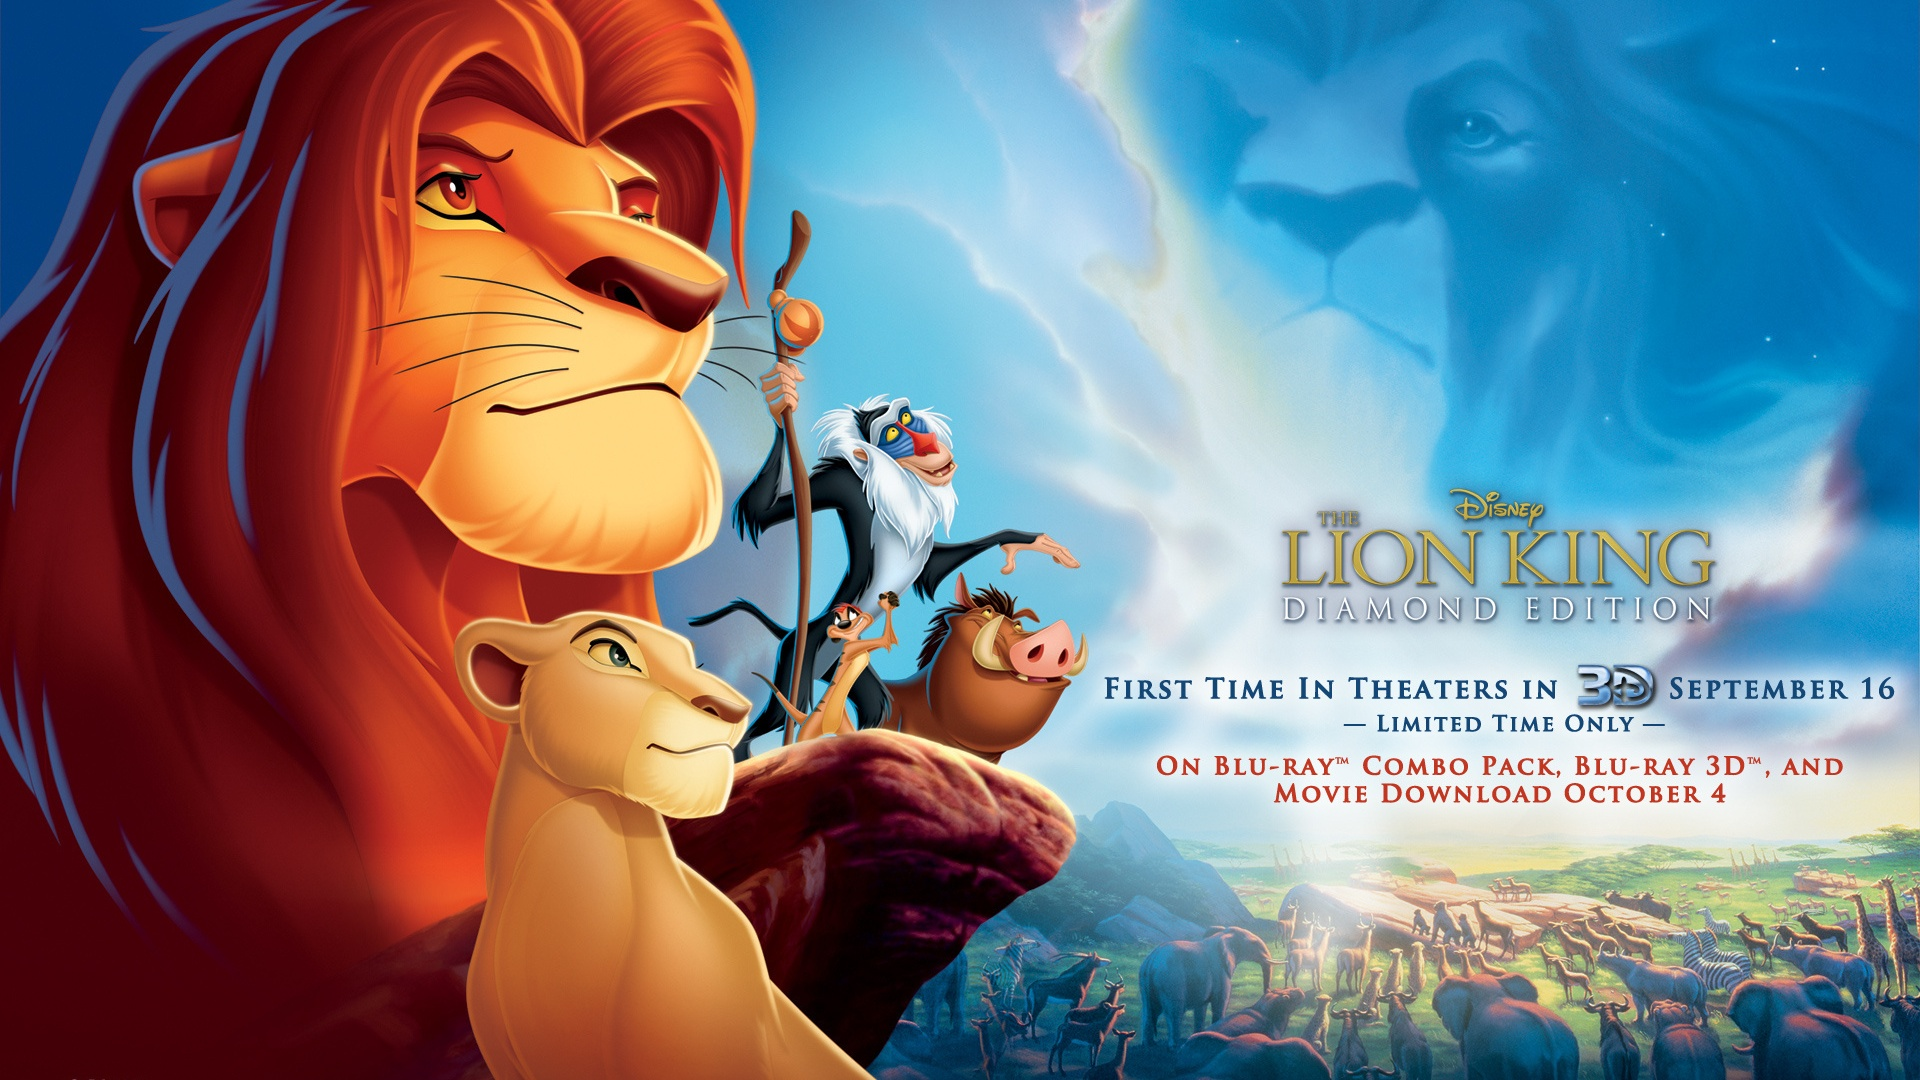 Disney movie The Lion King wallpaper - 1920x1080